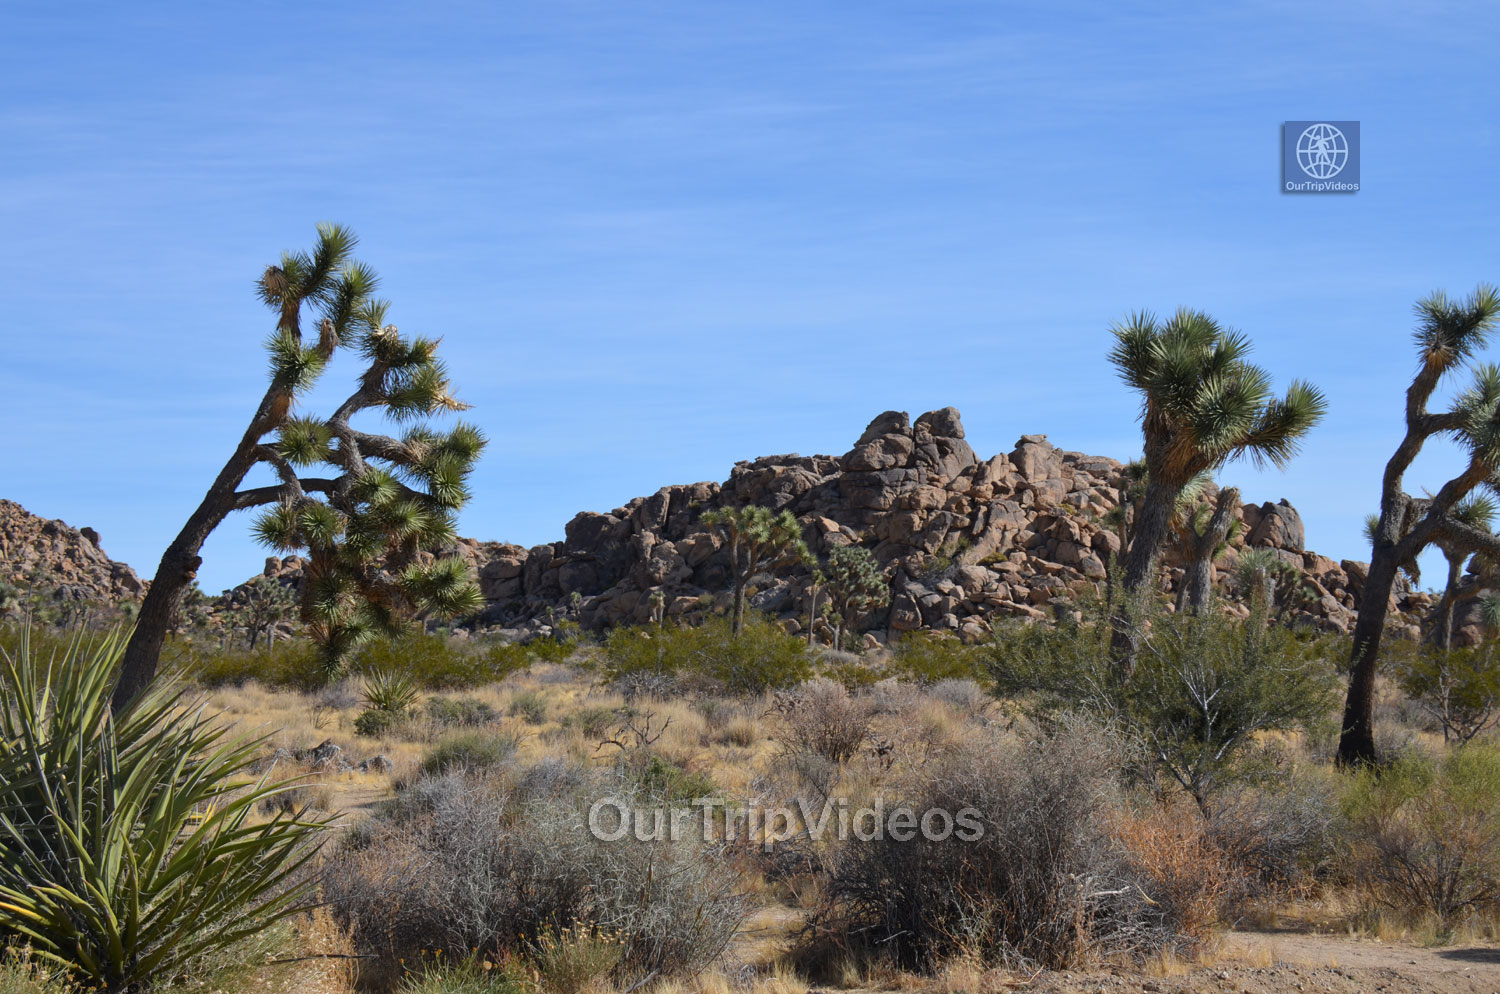 Joshua Tree National Park, Joshua Tree, CA, USA - Picture 17 of 25